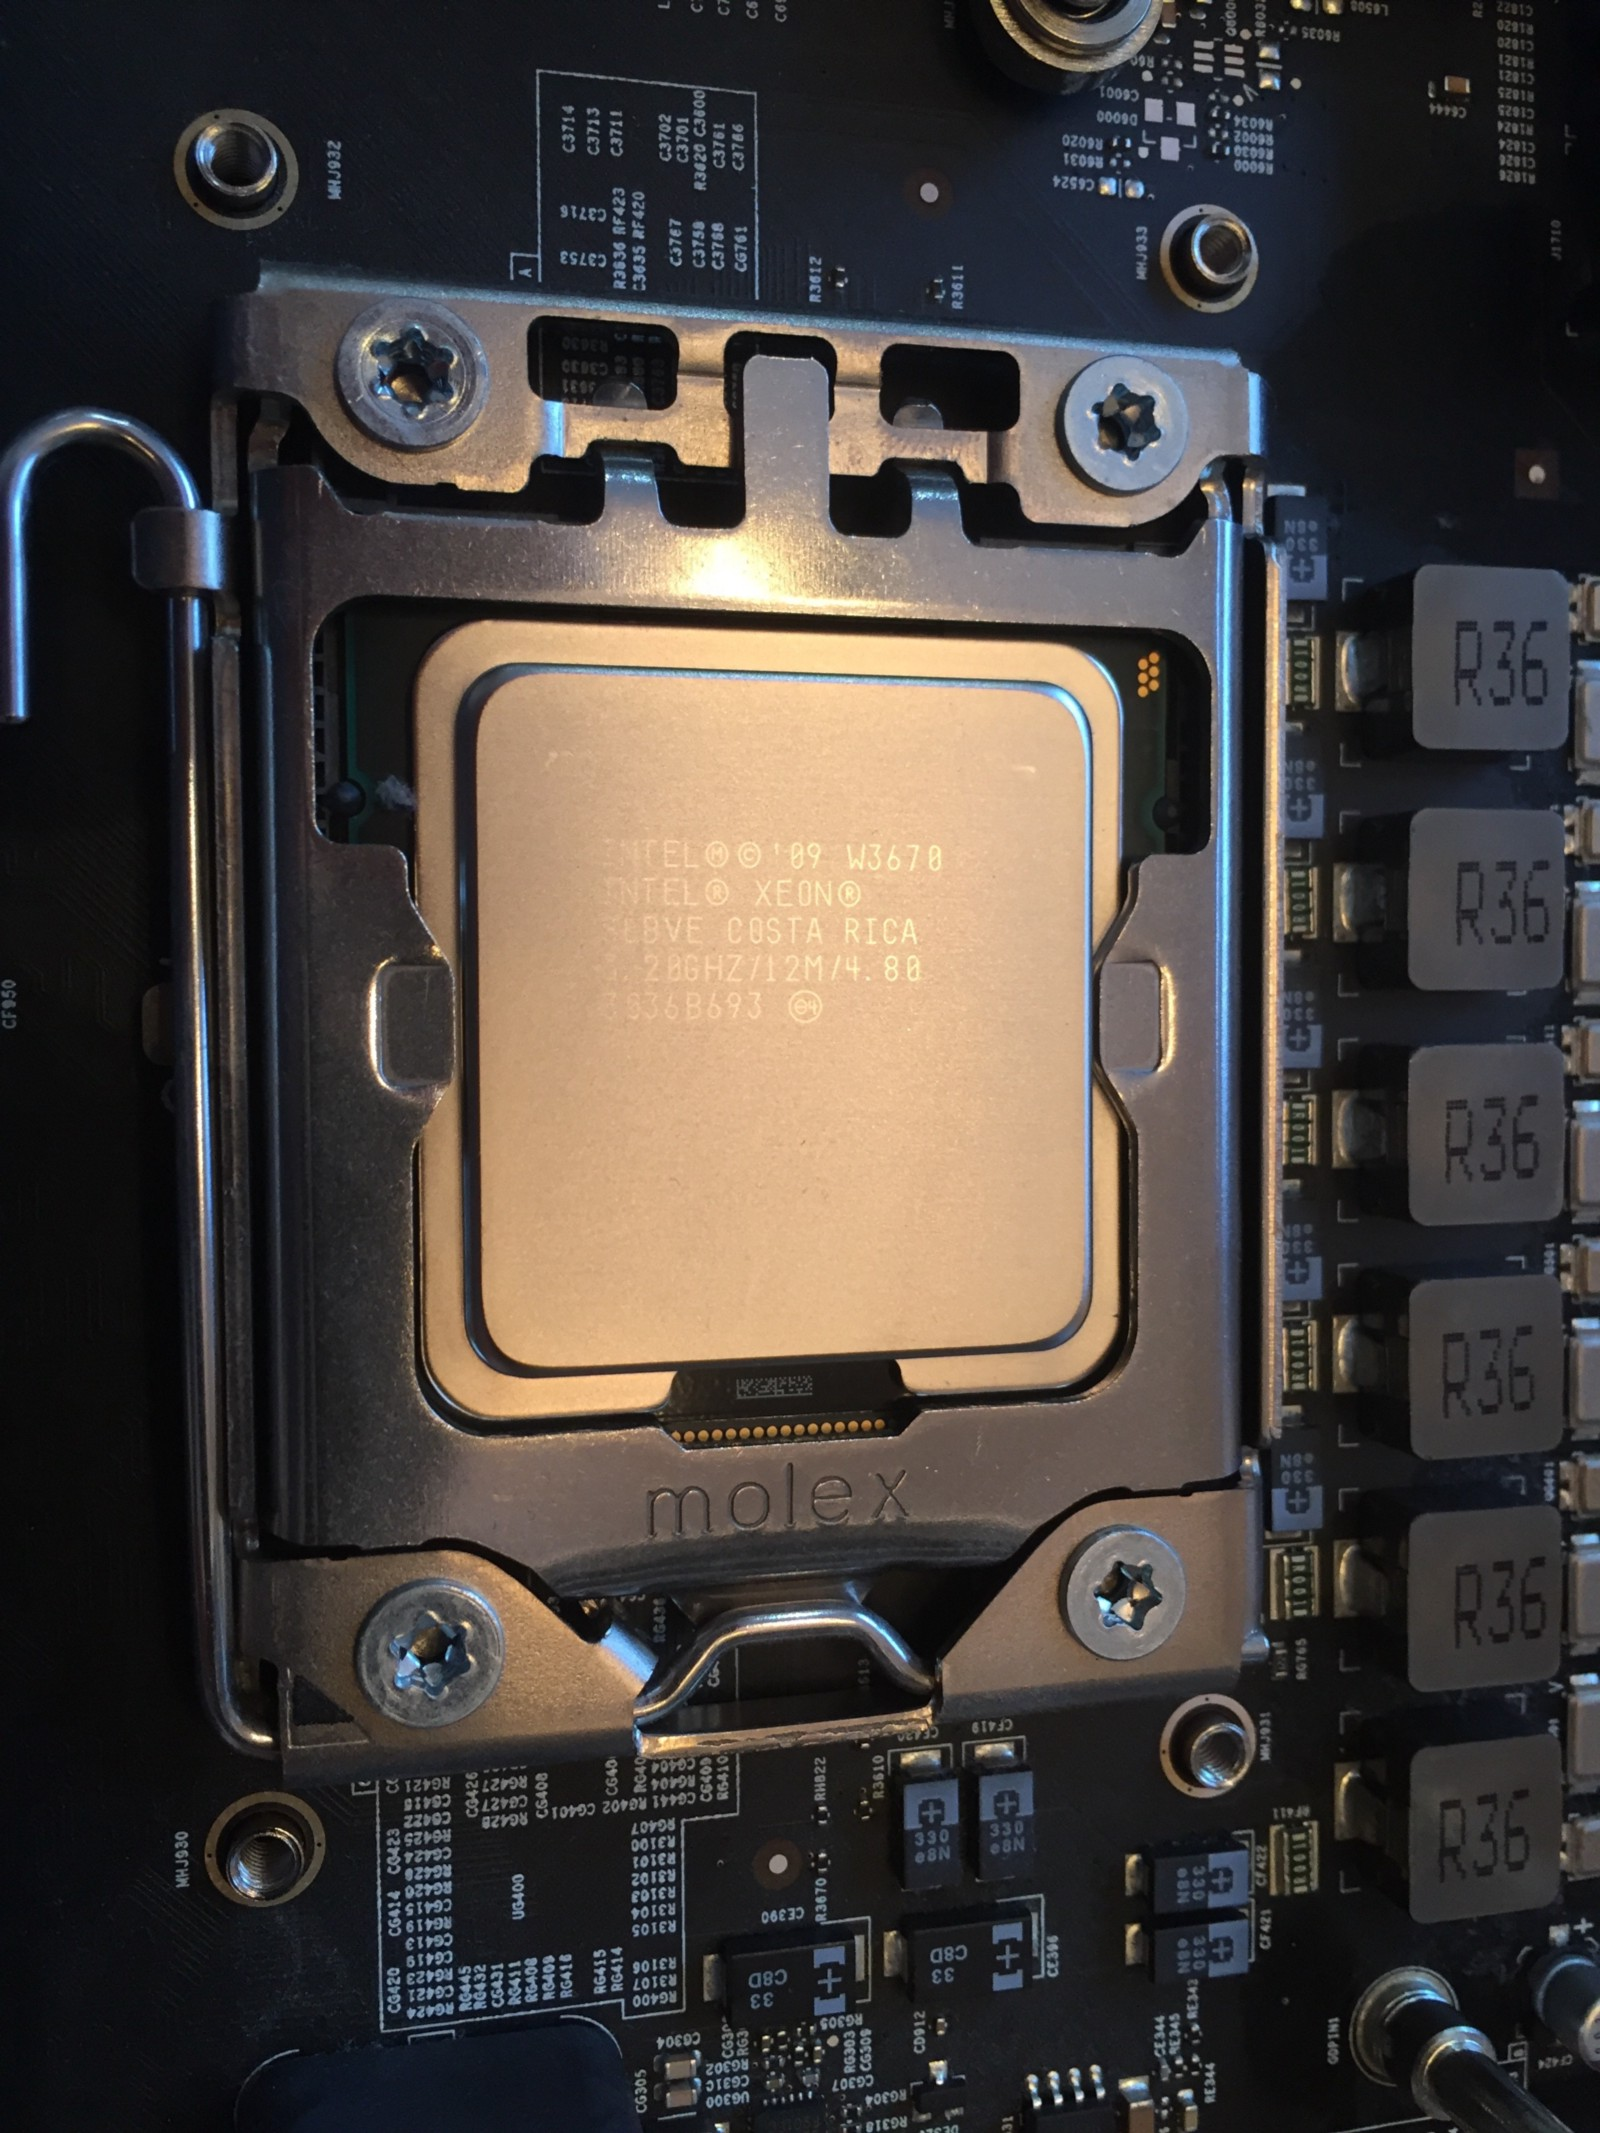 Upgrading The Cpu In A 2009 Mac Pro Paul Lefebvre Medium Locking Circuit Board Support Spacer From Reliable And Placed Socket It Only Fits One Way With Slots Lined Up Closed Cover Then Lowered Locked Latch Into Place